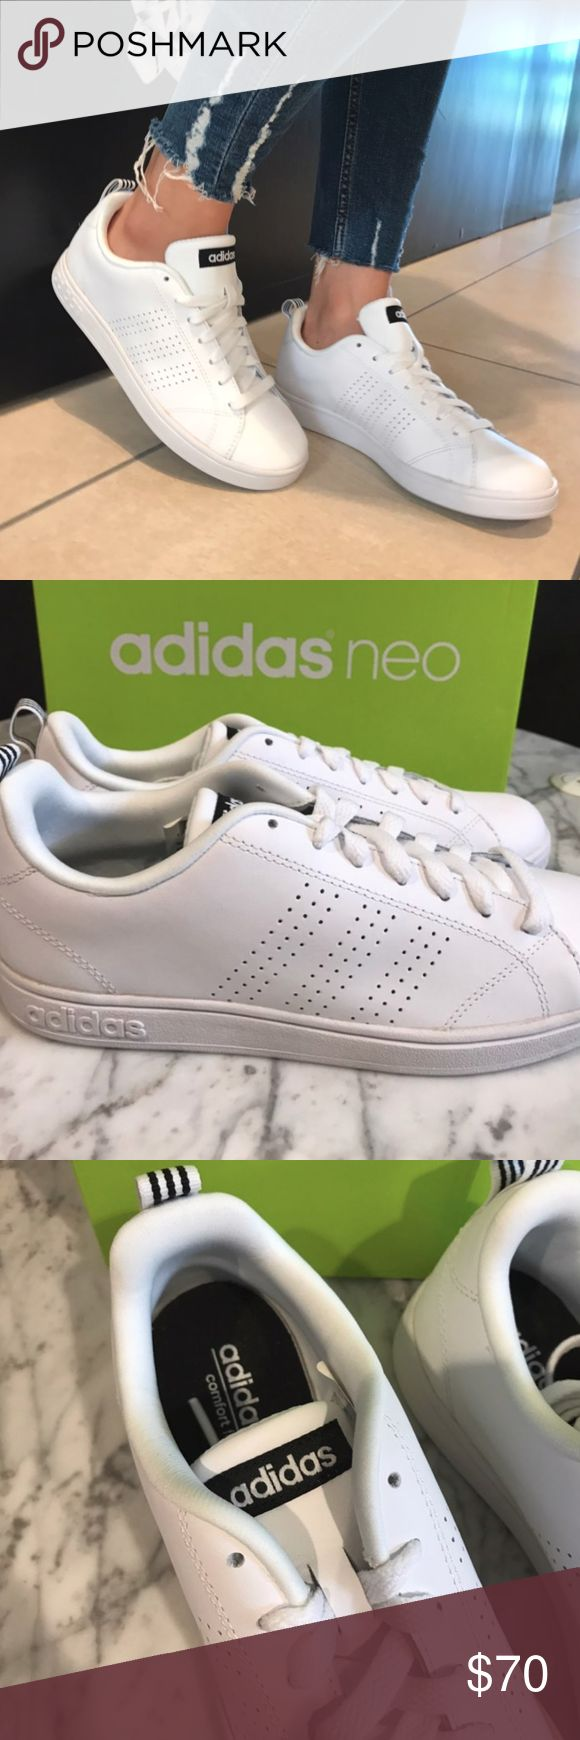 Adidas Neo Advantage Sneaker Adidas Women's Neo Advantage Sneaker All white sneaker Black & White Stripes on the back side only Punch hole style side stripes Leather upper Lace-up front Textured outsole adidas Shoes Sneakers